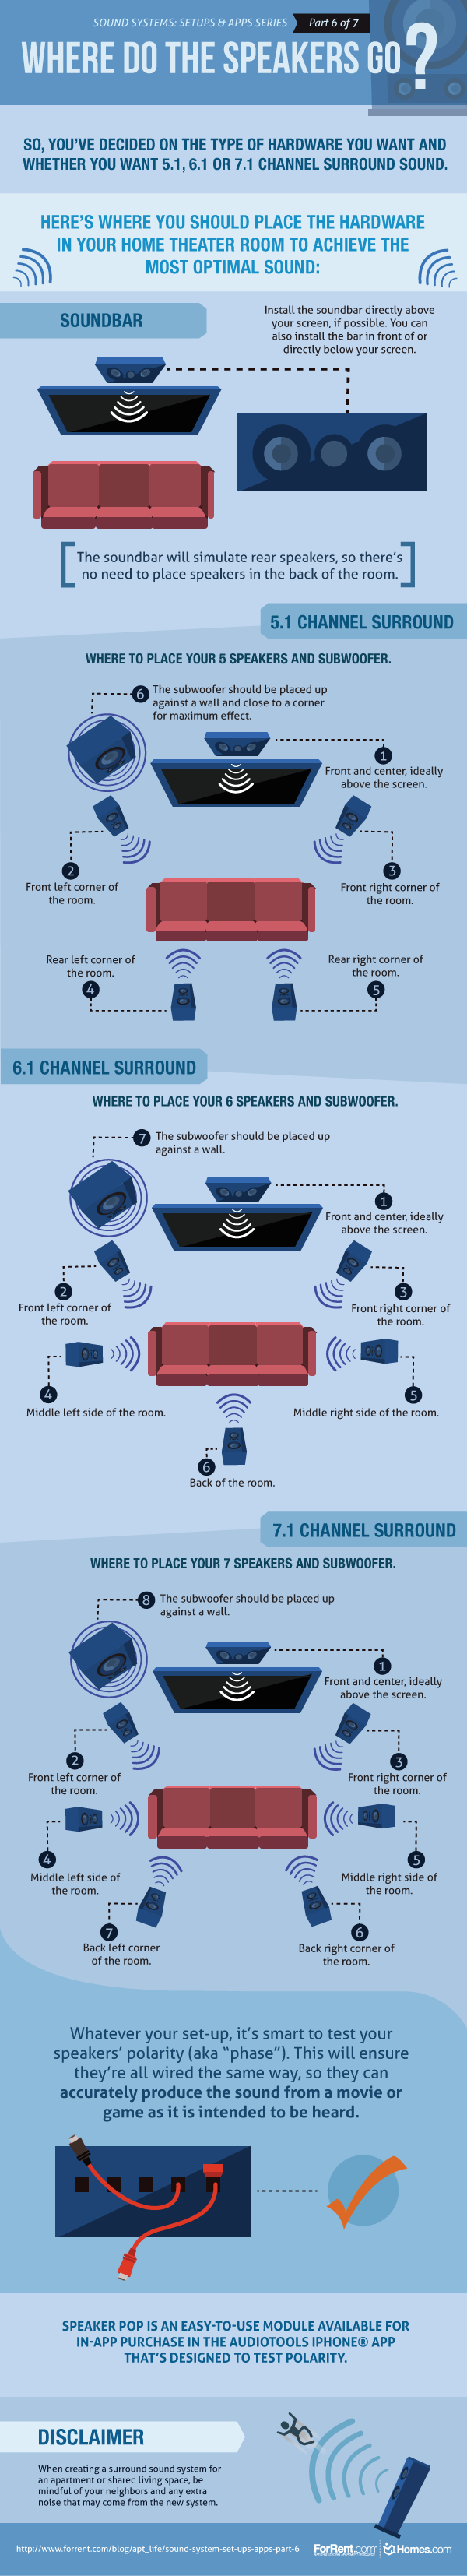 Sound System Set Ups & Apps - Part 6 | Home Audio | Pinterest ...